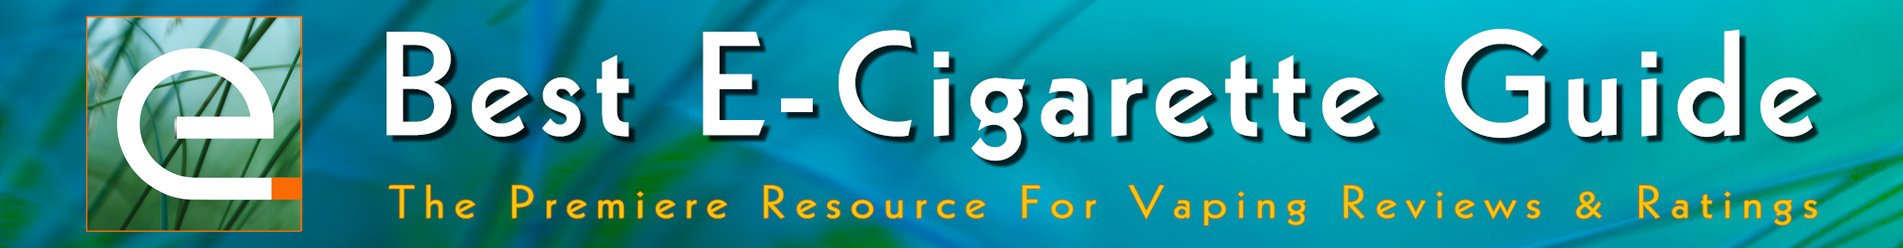 2020 Best ECigarette Guide Header Logo